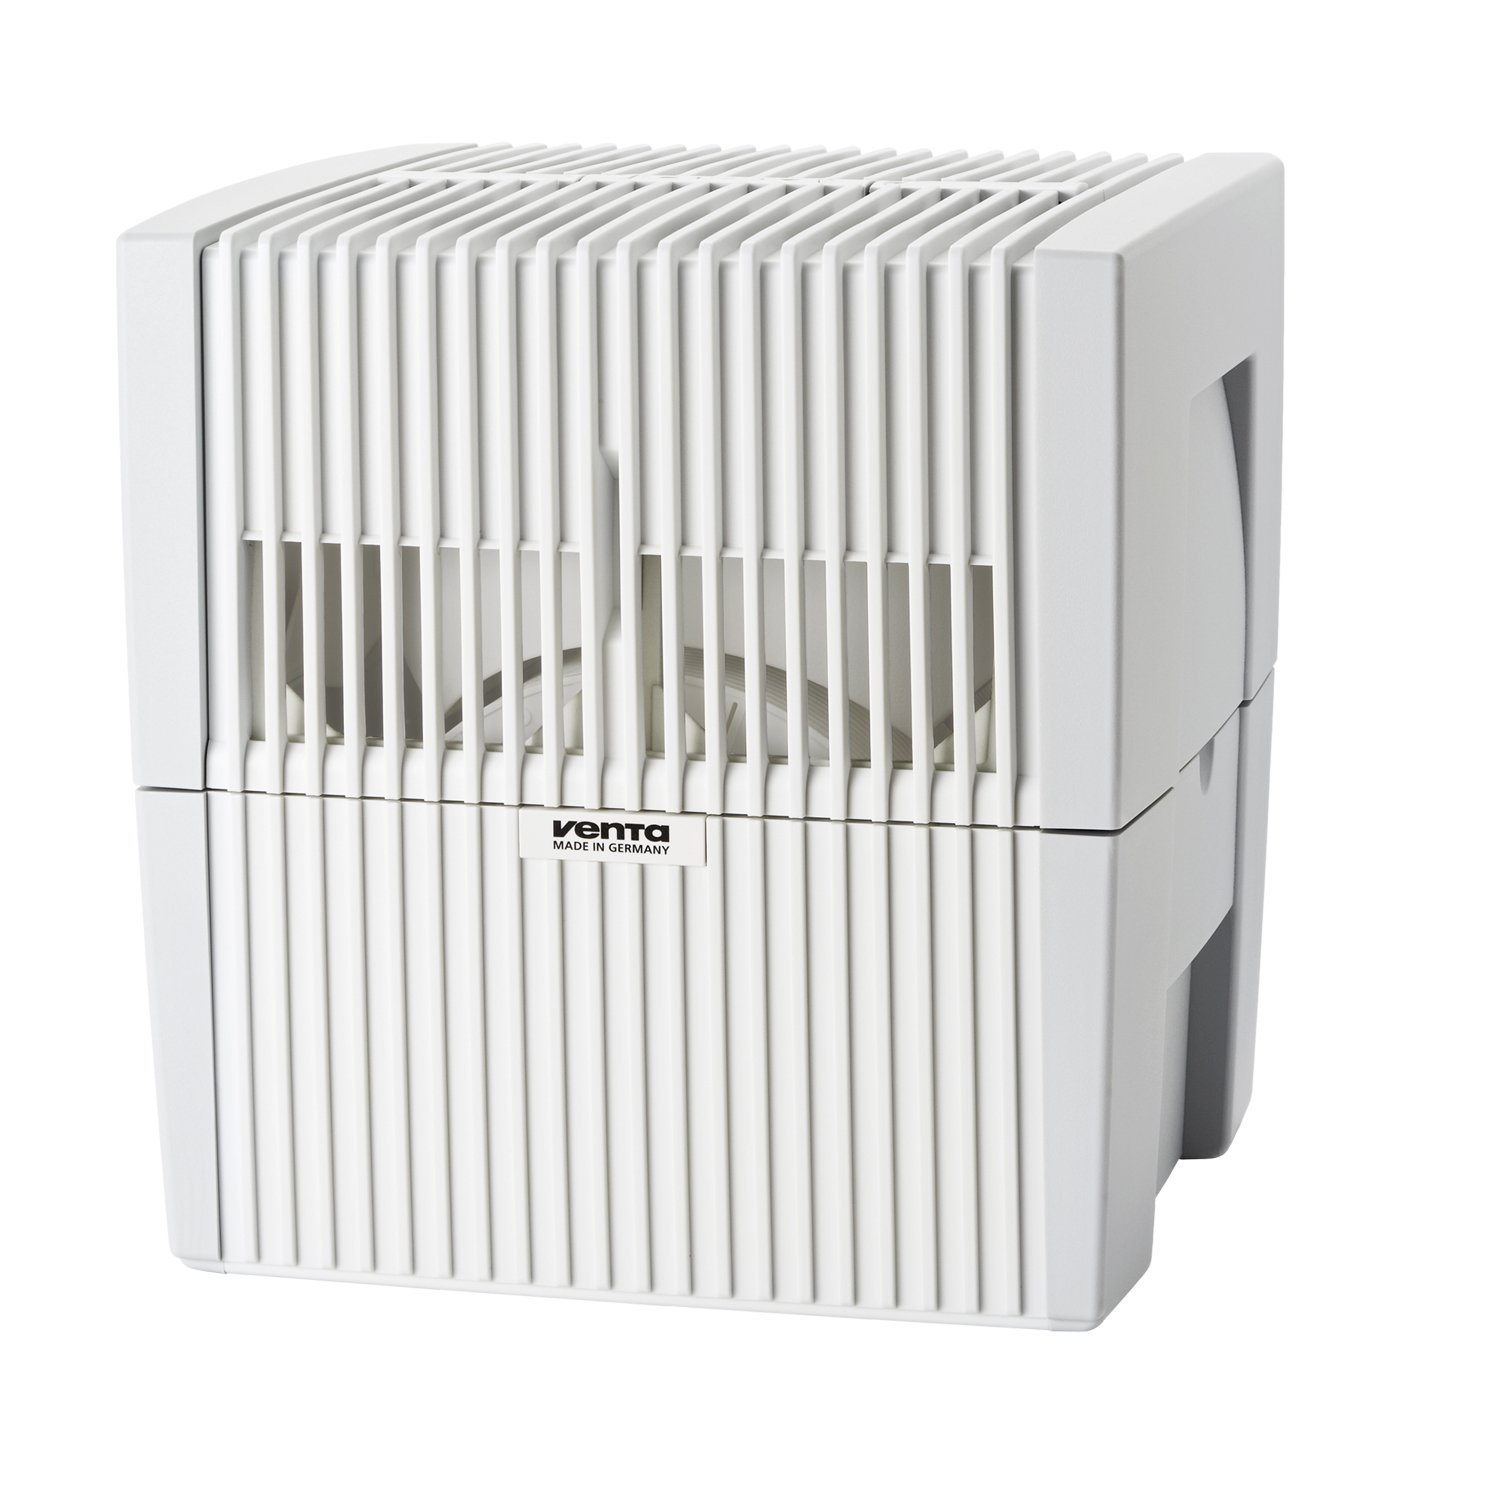 White 400 Square Feet Venta LW15 Airwasher 2-in-1 Humidifier and Air Purifier in Black